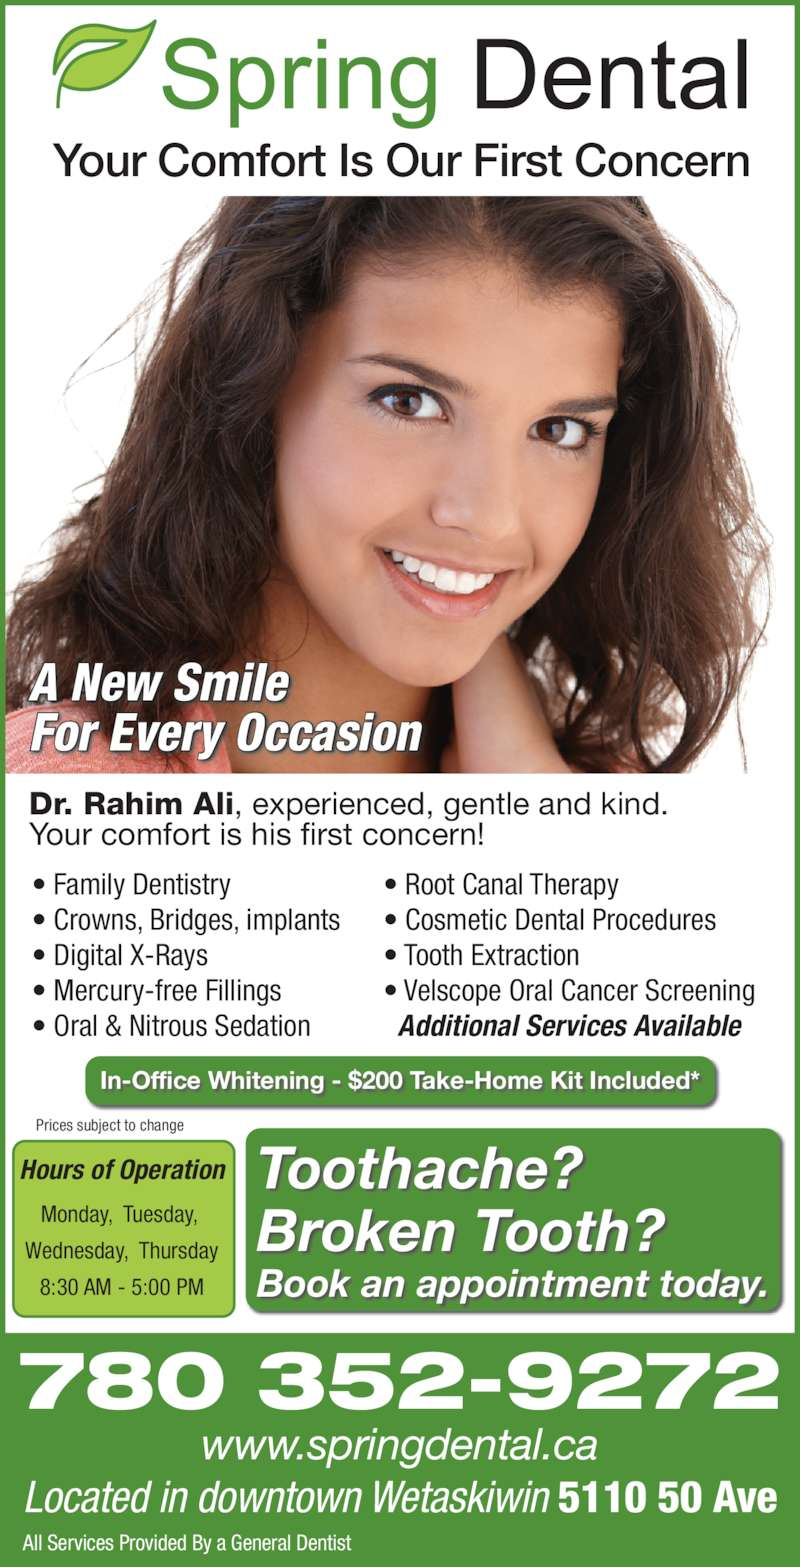 Spring Dental (7803529272) - Display Ad - Dr. Rahim Ali, experienced, gentle and kind. Your comfort is his first concern! Hours of Operation Monday,  Tuesday,  Wednesday,  Thursday 8:30 AM - 5:00 PM Toothache? Broken Tooth? Book an appointment today. Your Comfort Is Our First Concern A New Smile Located in downtown Wetaskiwin 5110 50 Ave 780 352-9272 www.springdental.ca All Services Provided By a General Dentist Prices subject to change ? Family Dentistry ? Crowns, Bridges, implants ? Digital X-Rays ? Mercury-free Fillings ? Oral & Nitrous Sedation ? Root Canal Therapy ? Cosmetic Dental Procedures ? Tooth Extraction For Every Occasion   Additional Services Available In-Office Whitening - $200 Take-Home Kit Included* ? Velscope Oral Cancer Screening